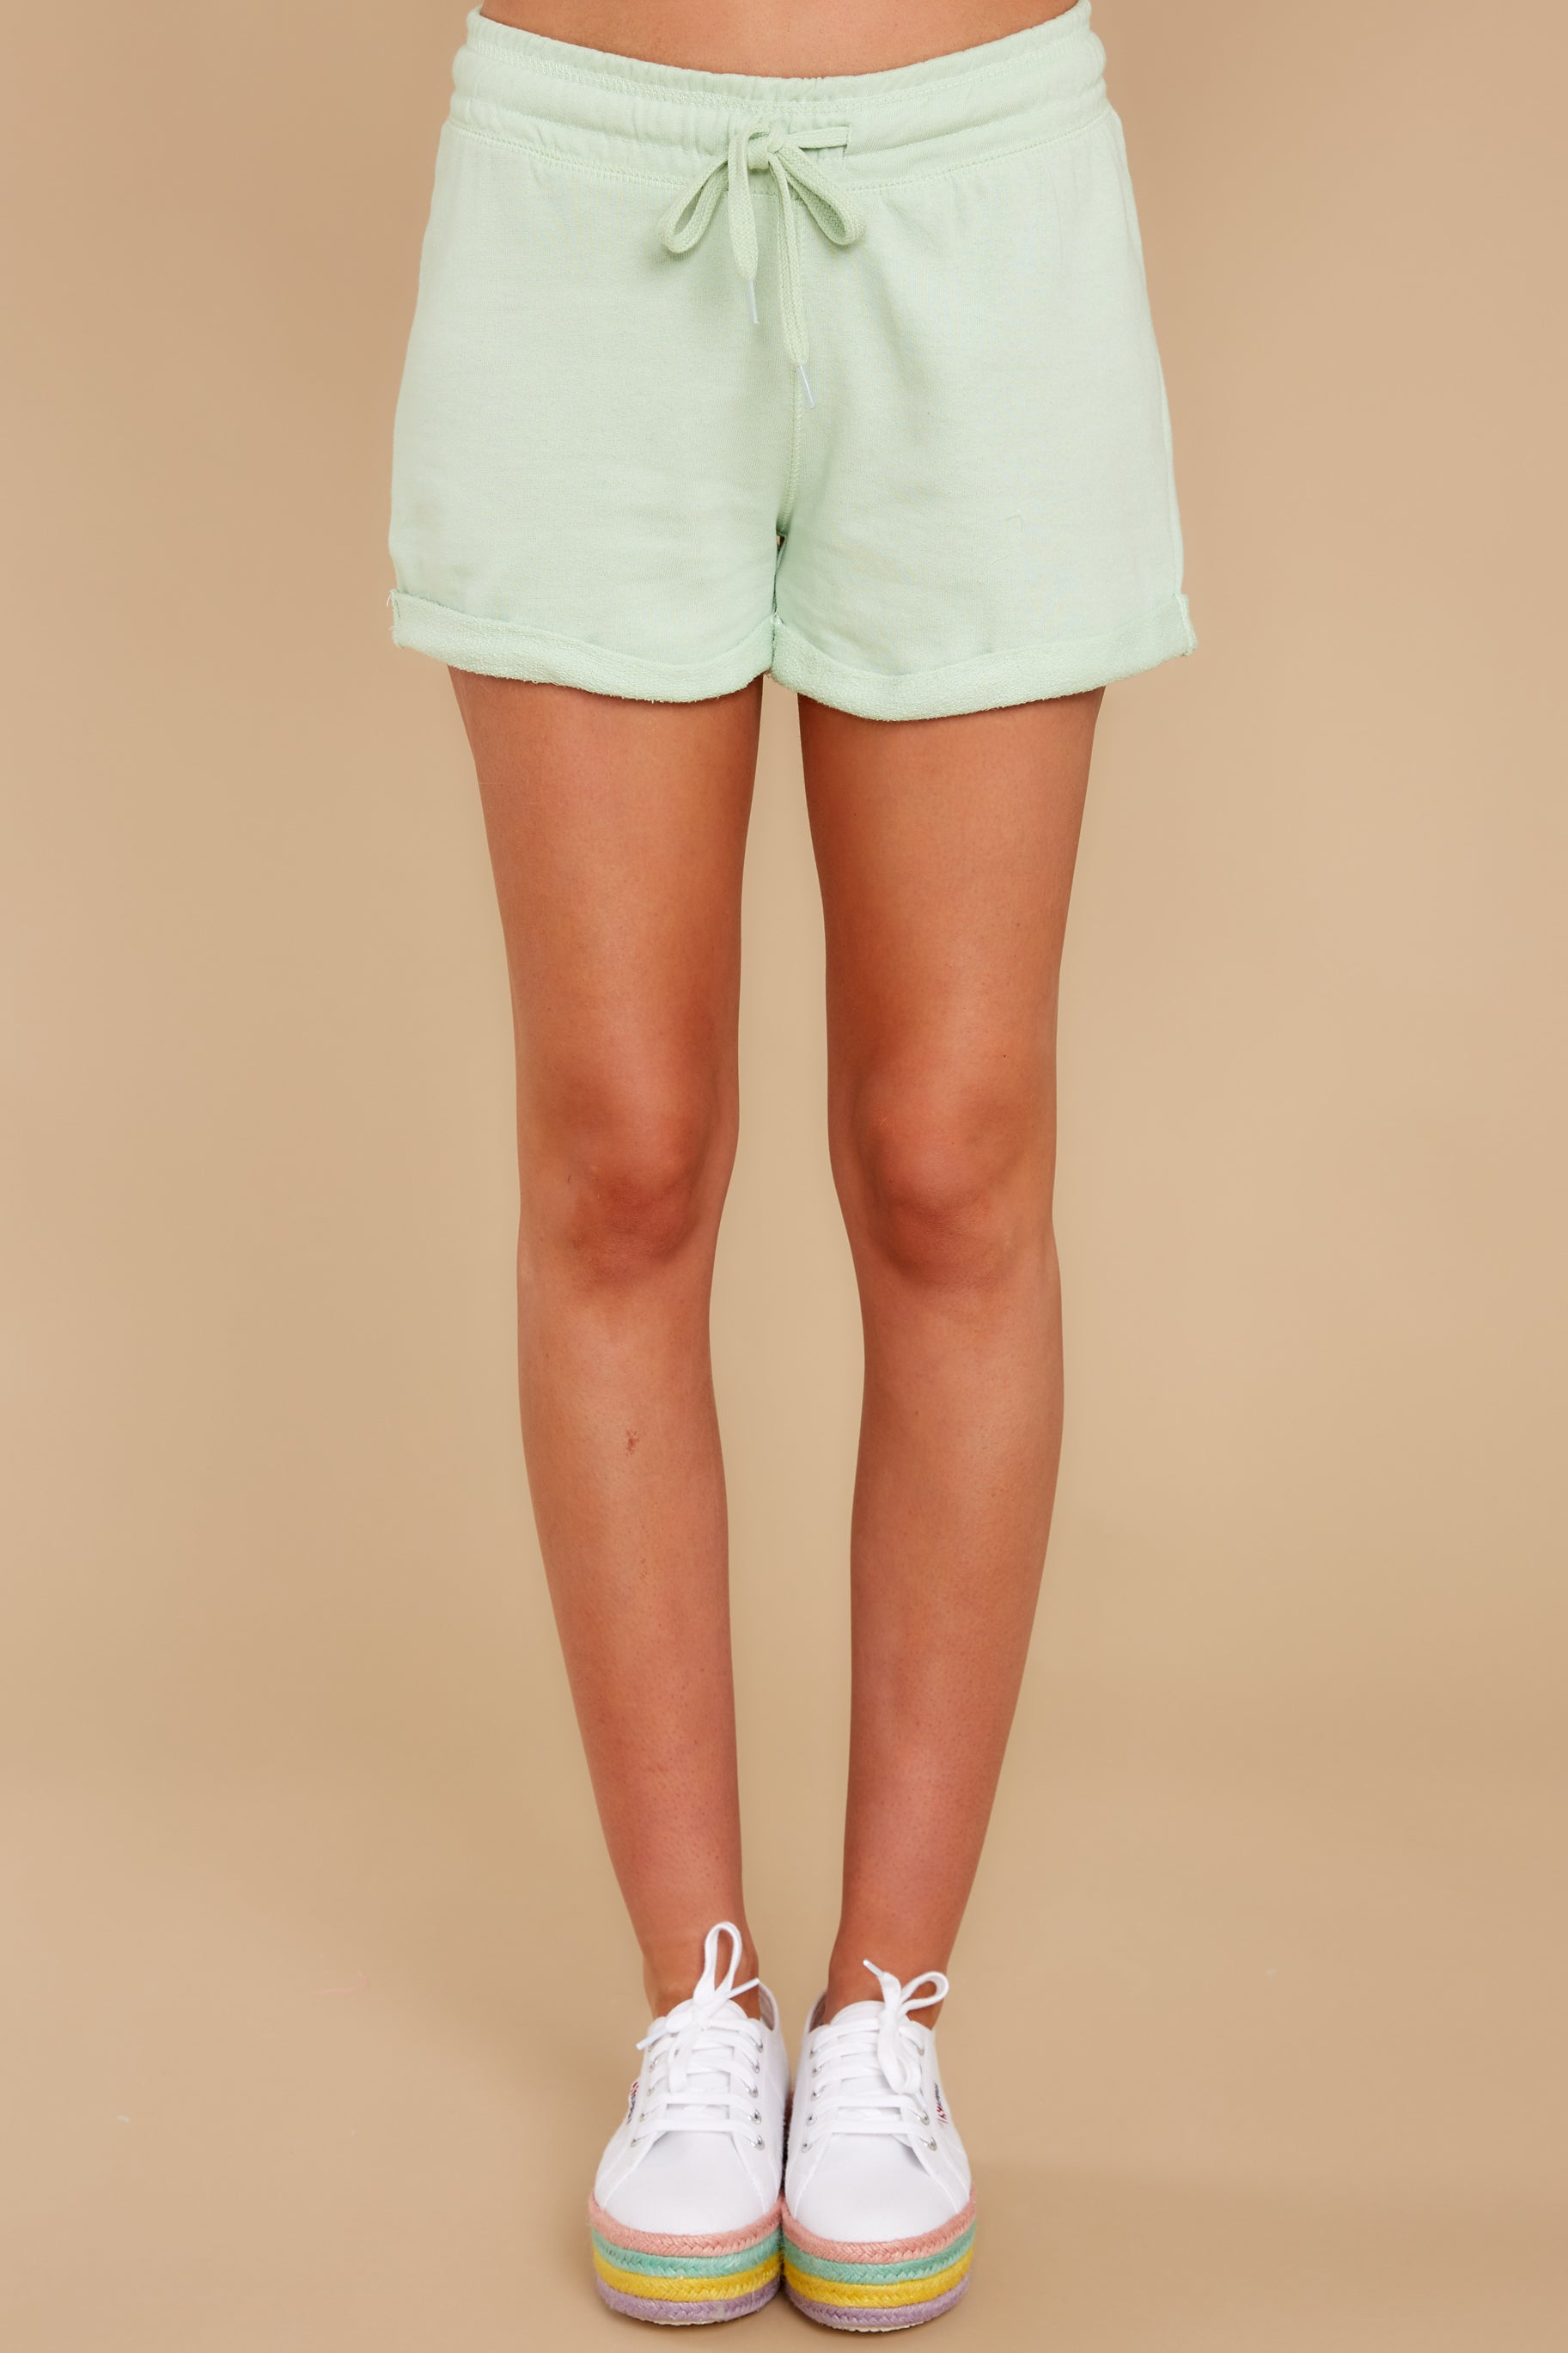 2 Such A Sweetheart Pastel Green Shorts at reddress.com